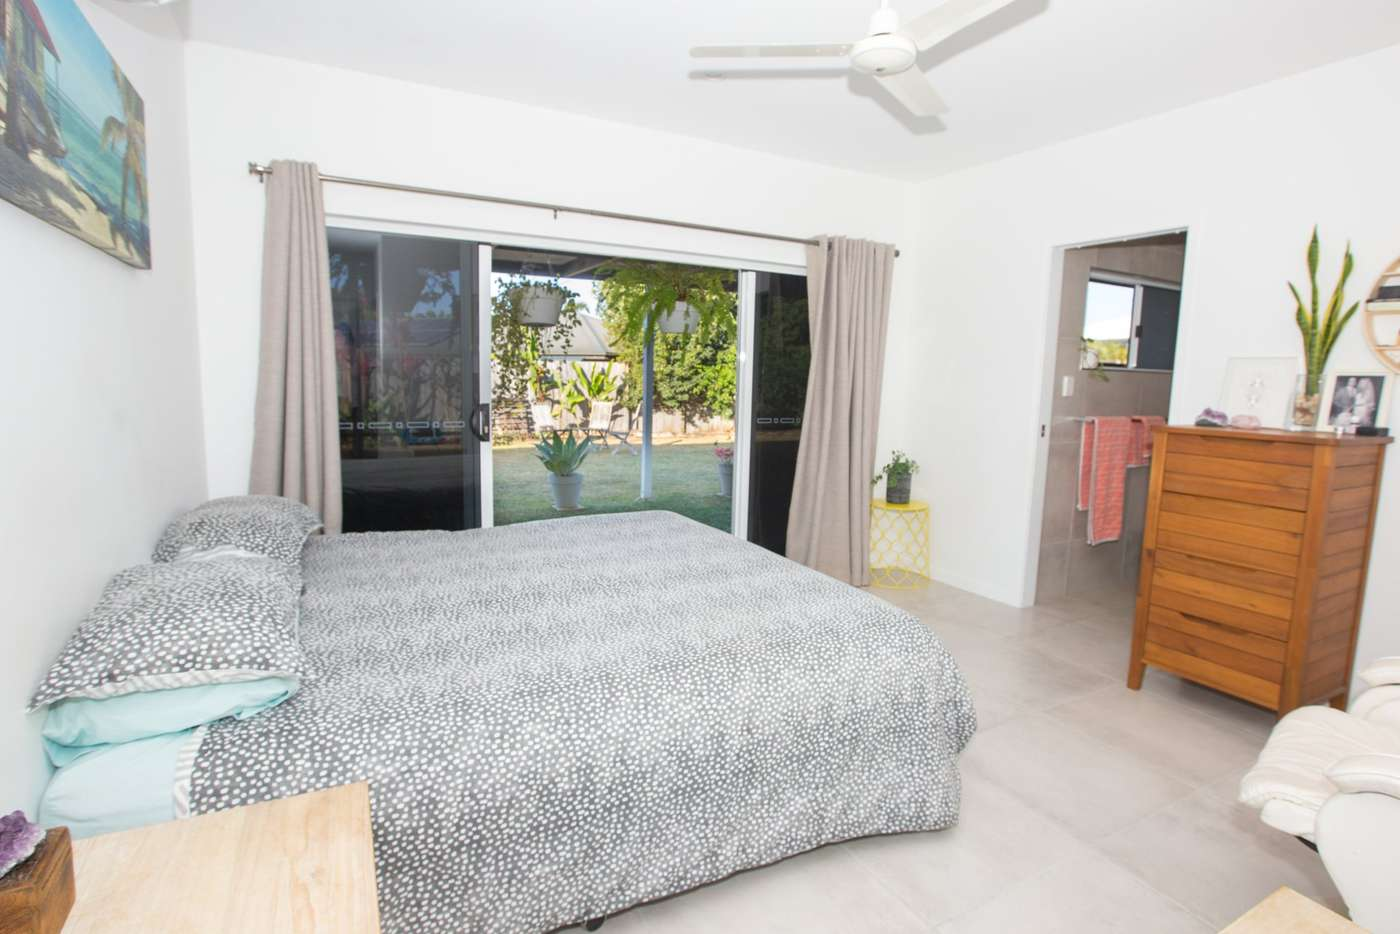 Seventh view of Homely house listing, 4 Julaji Close, Cooya Beach QLD 4873